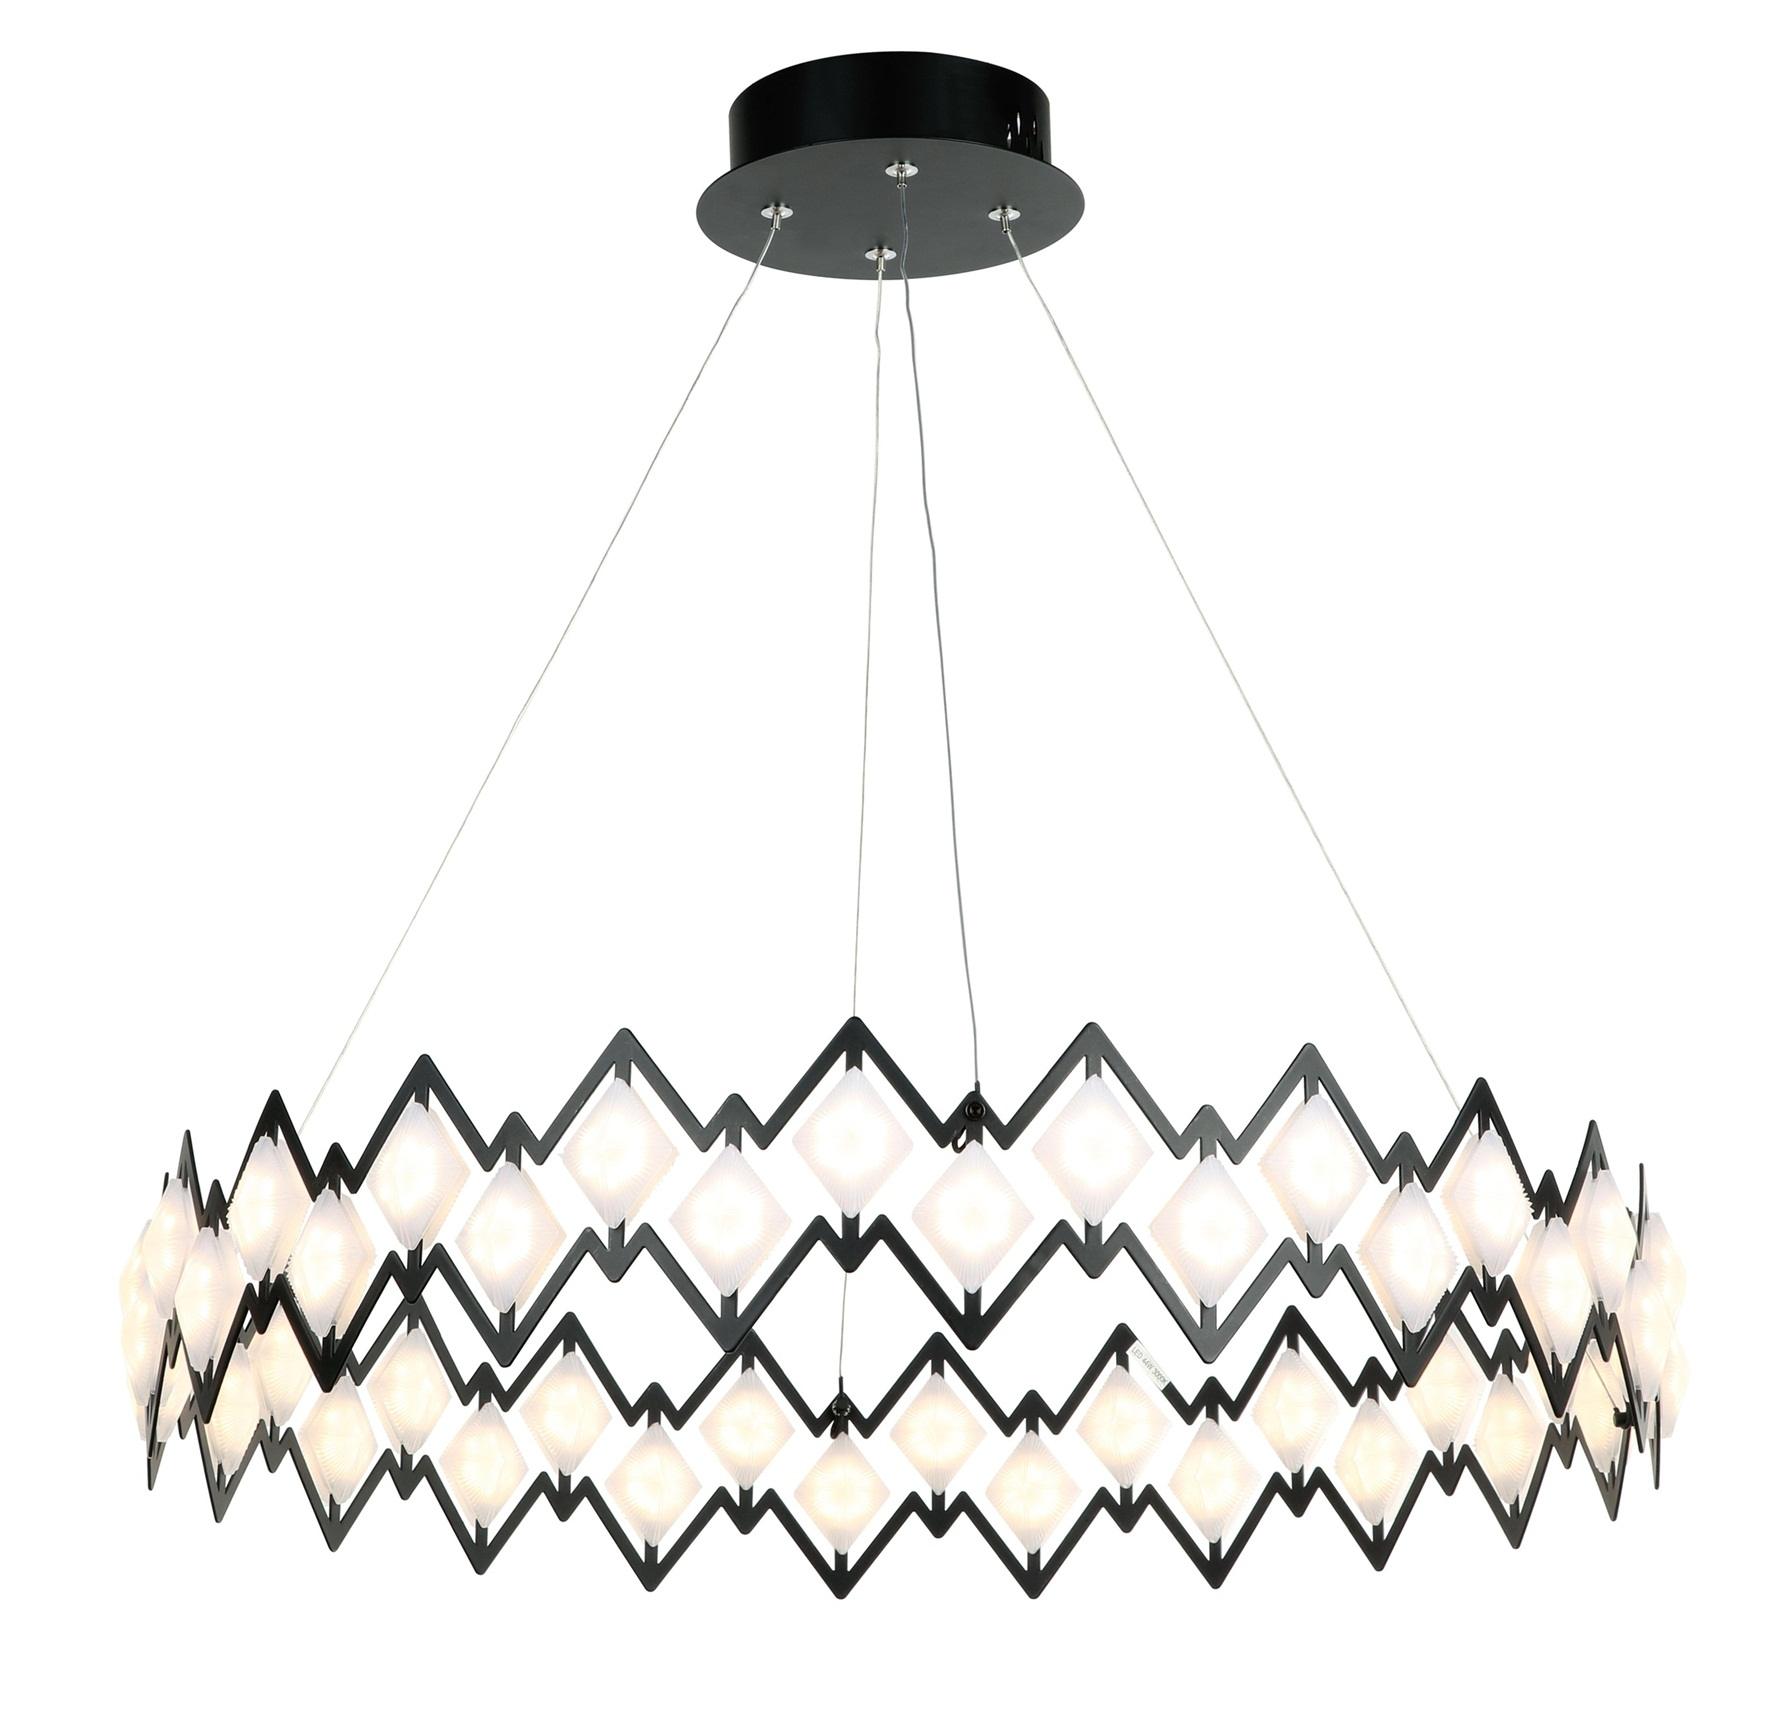 decorative hanging pendant lights 66663a24w free quote for study room-2